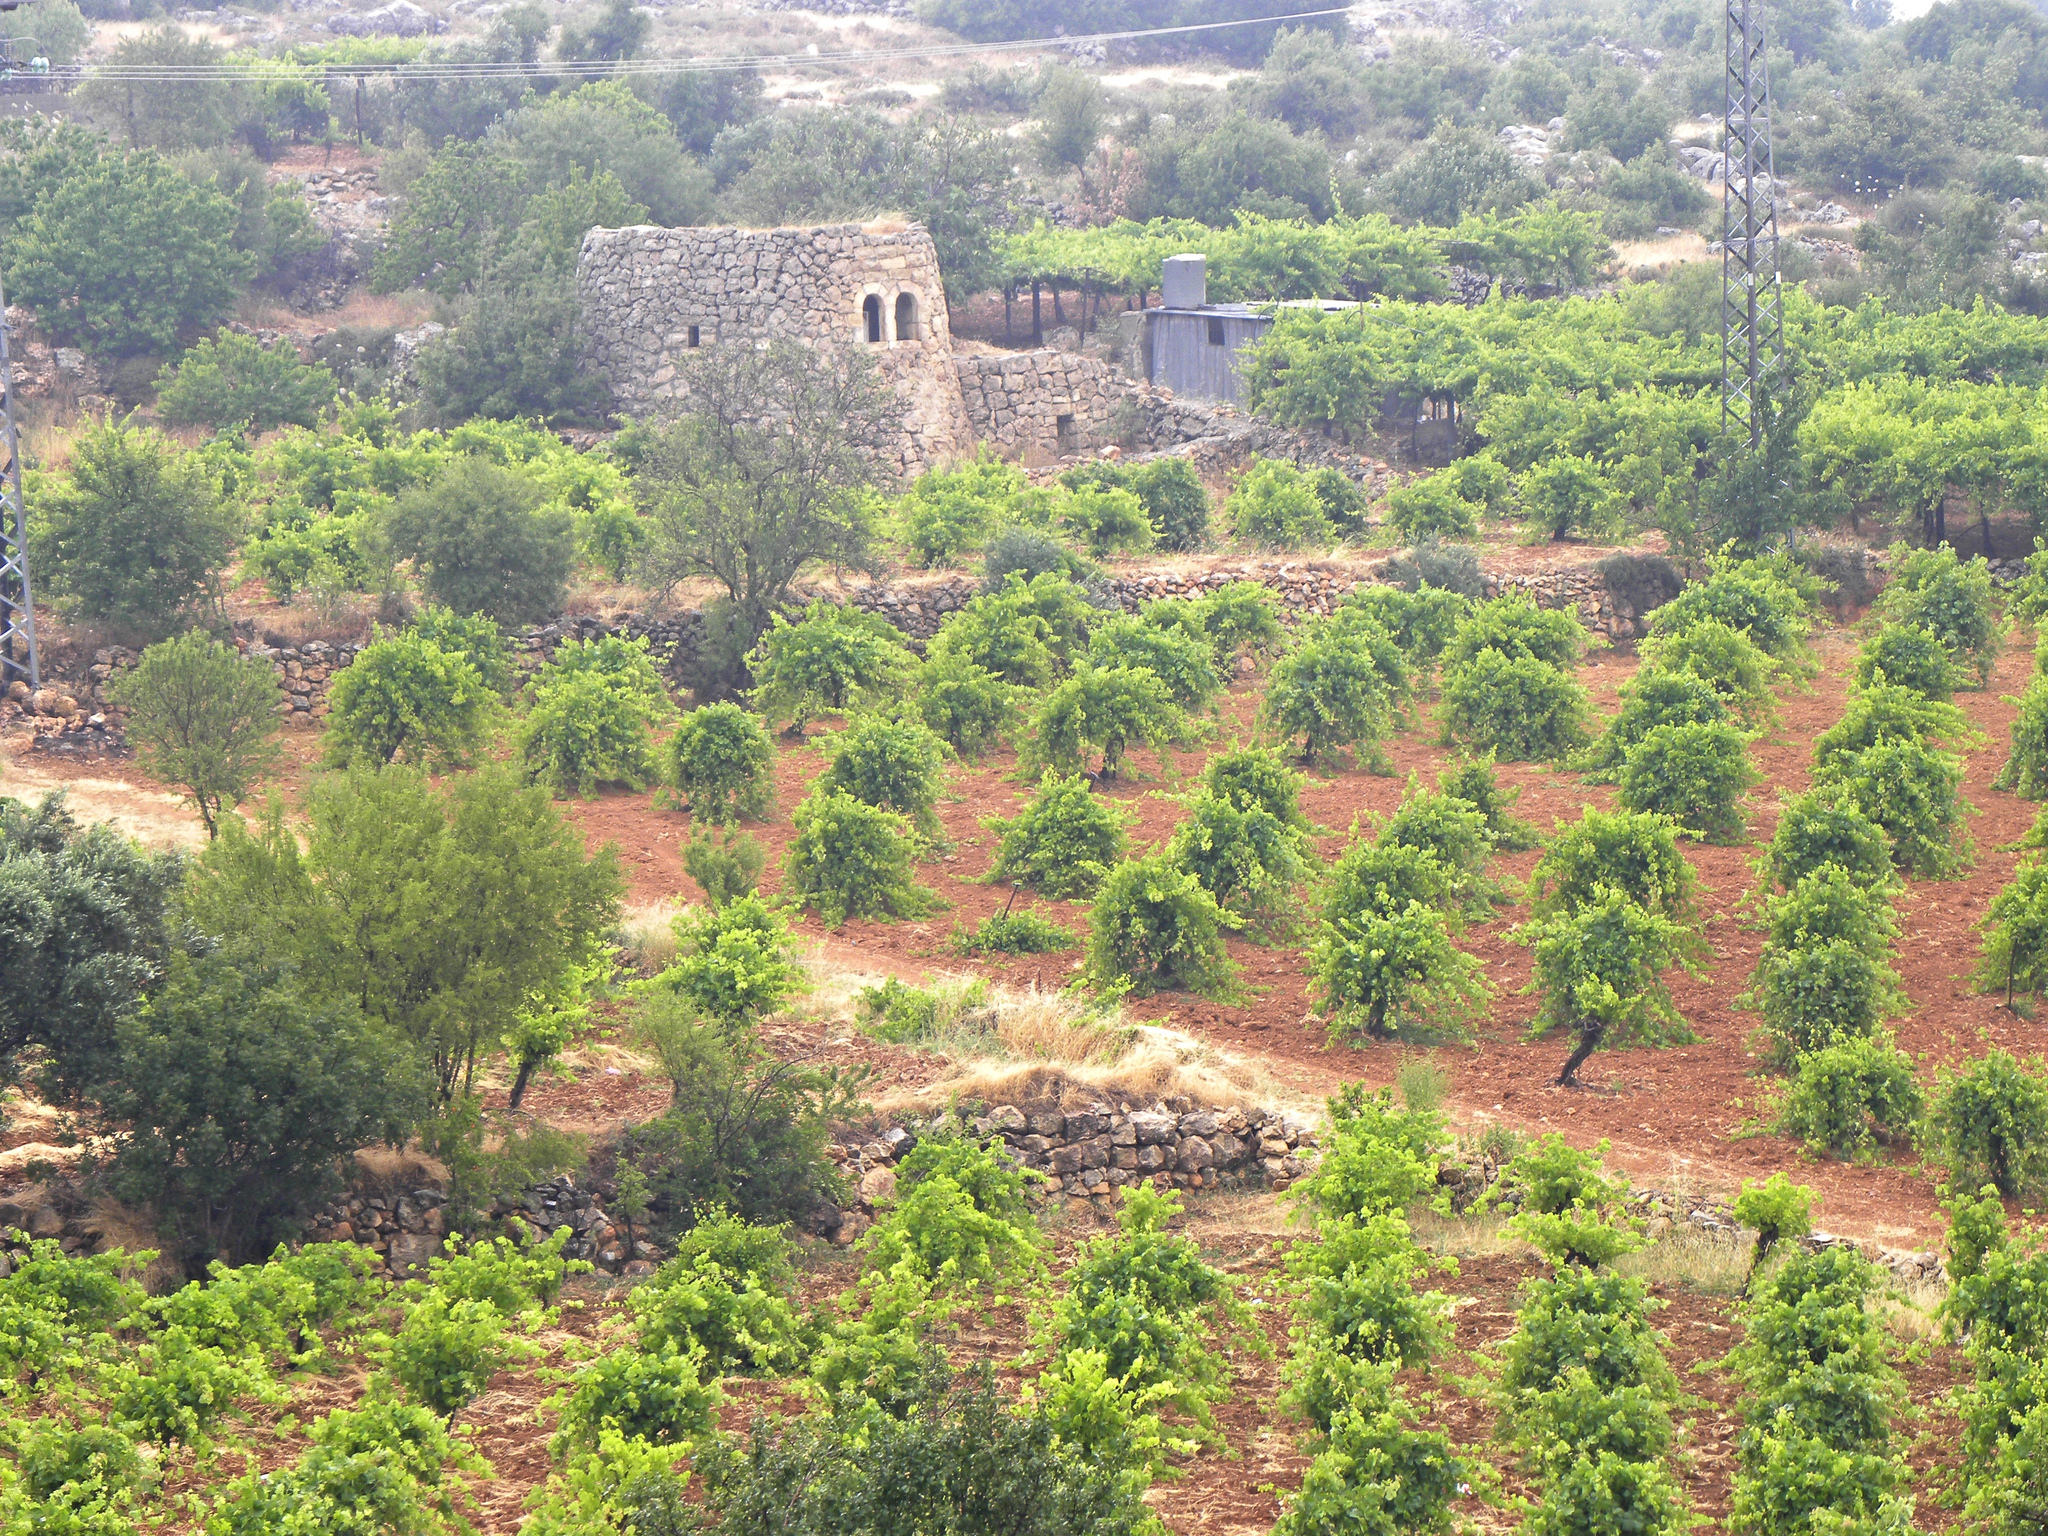 A vineyard in Israel. Israeli wine will be one of the topics you can learn about during this year's Jewish Culture Festival, which begins this week (phot. Ian Scott)